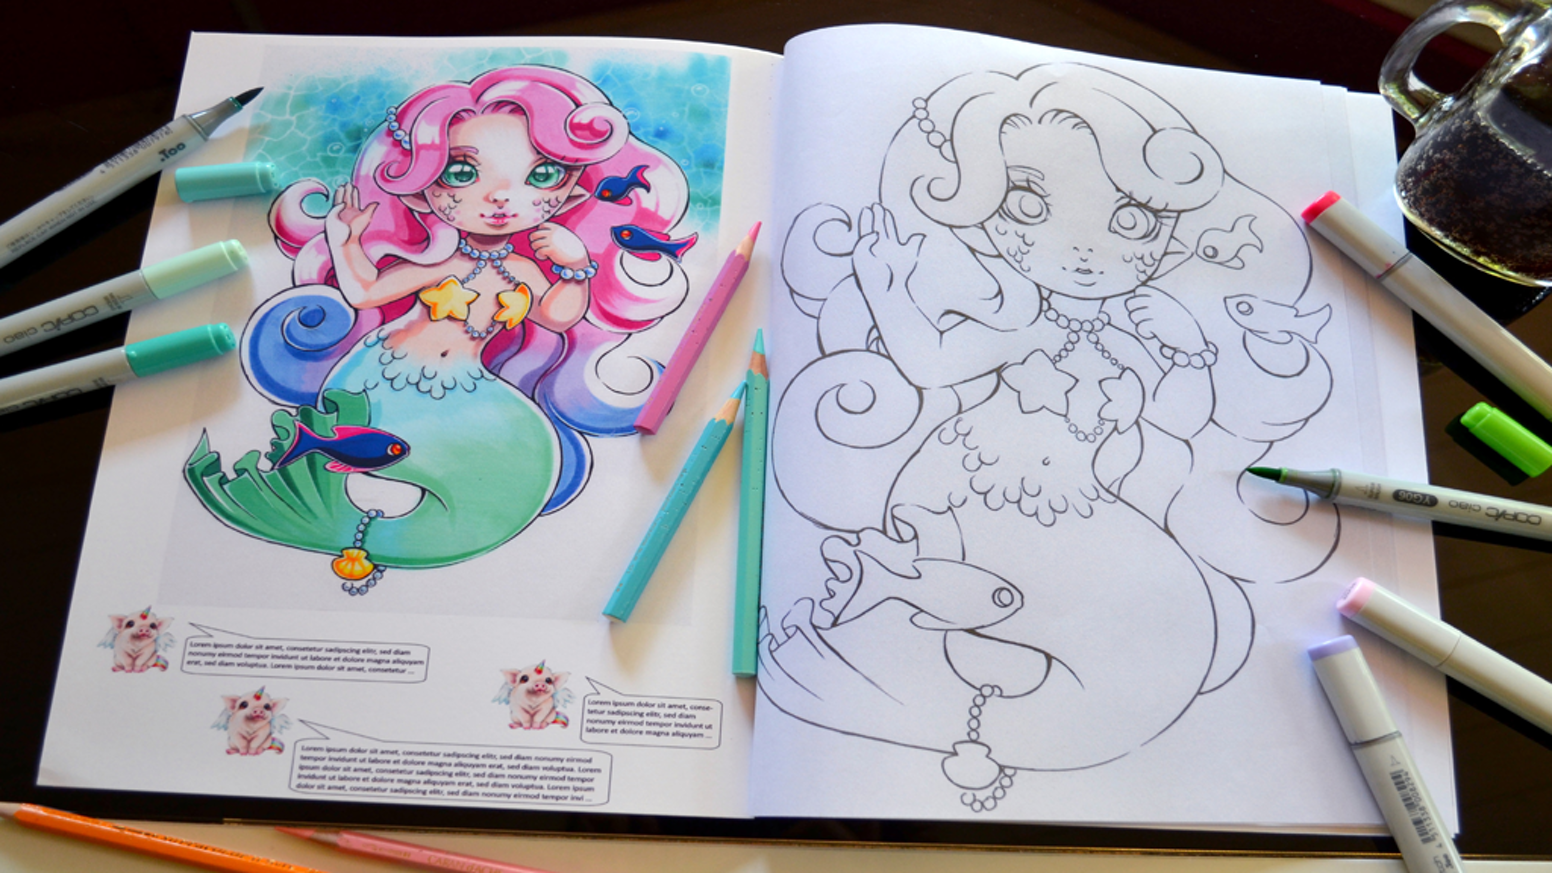 Lighane S Coloring Book Mythical Creatures By Lisa Saukel